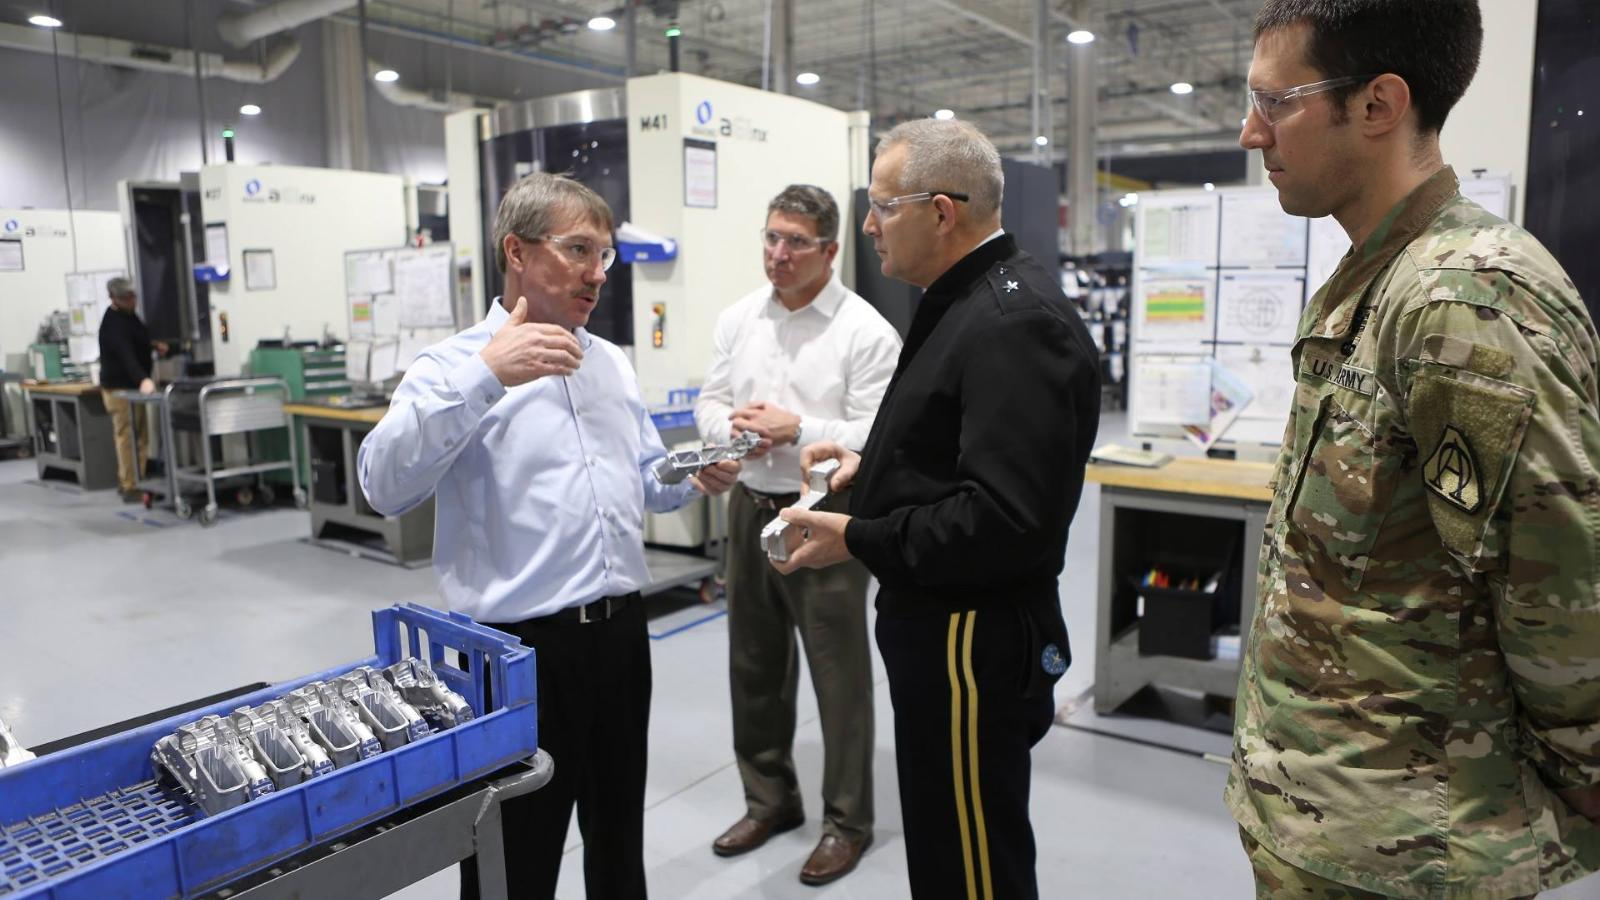 Brigadier General Tony Potts, who has overseen the US Army's transition to its new XM17 pistol, toured Sig Sauer's facility in Newington, New Hampshire, in February.